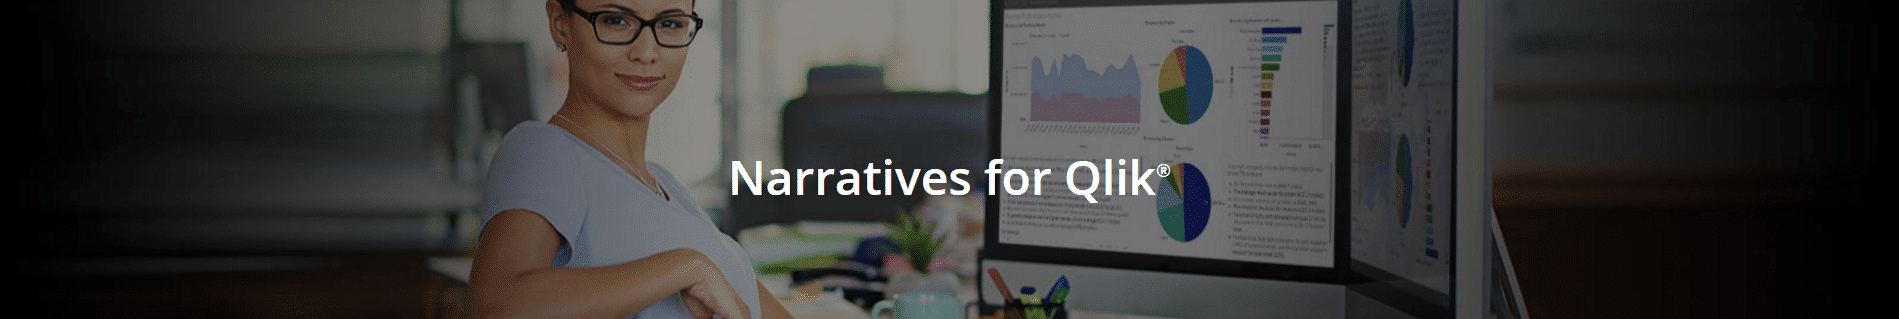 narratives for qlik,narrative science, qlik,qlik sense, qliksense, qlik sence, qlik data storytelling,data discovery,business intelligence,